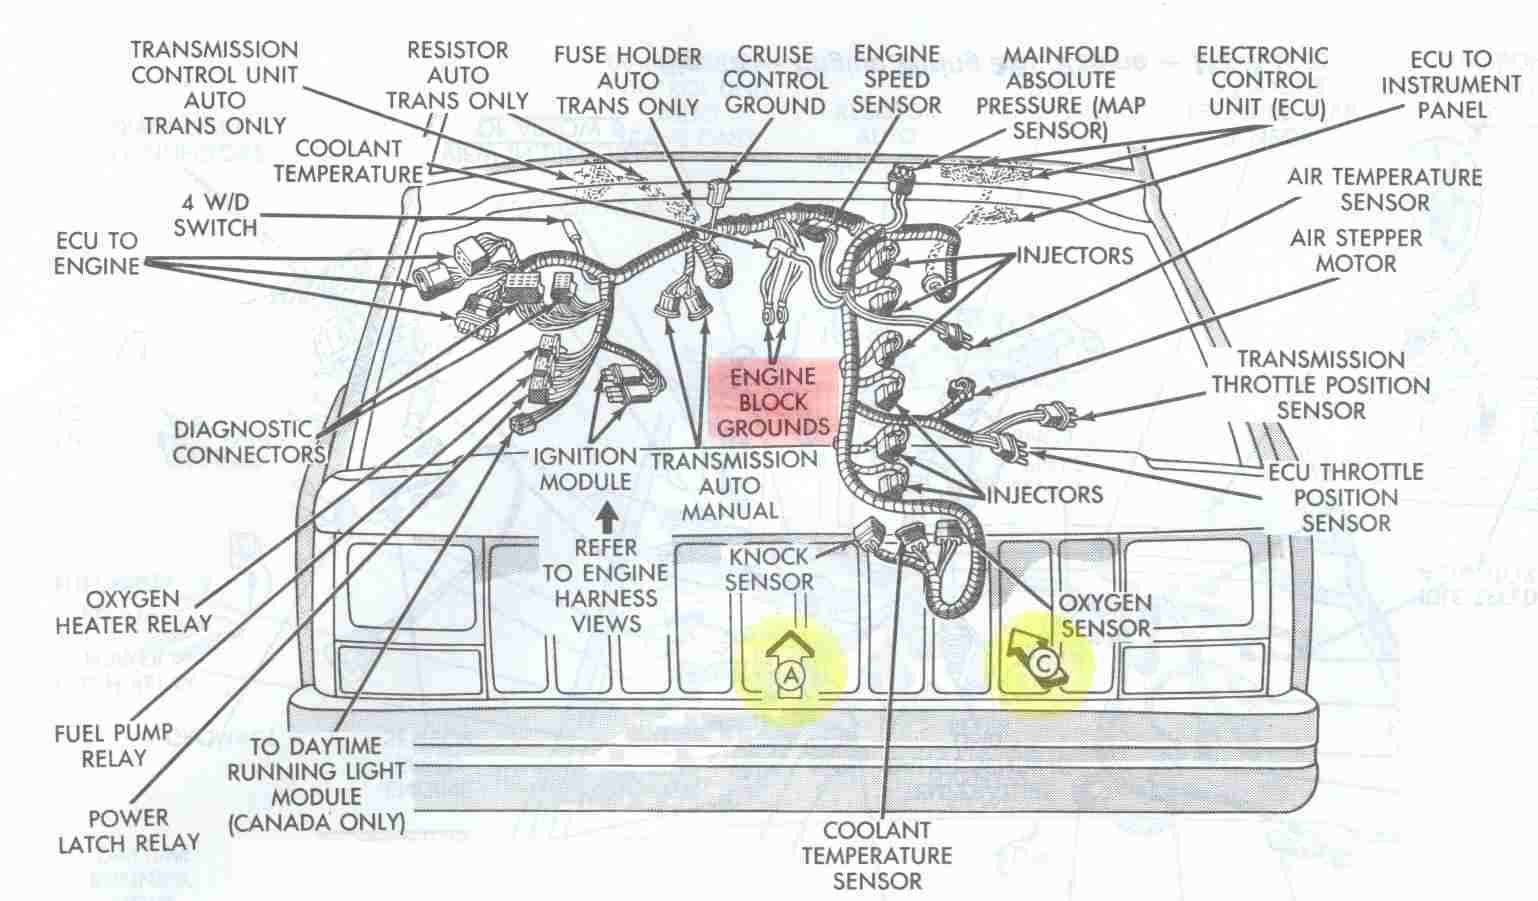 jeep 4 0 wiring harness wiring diagram third level rh 17 9 15 jacobwinterstein com 2004 jeep wrangler engine compartment diagram 1989 jeep wrangler engine  [ 1538 x 901 Pixel ]